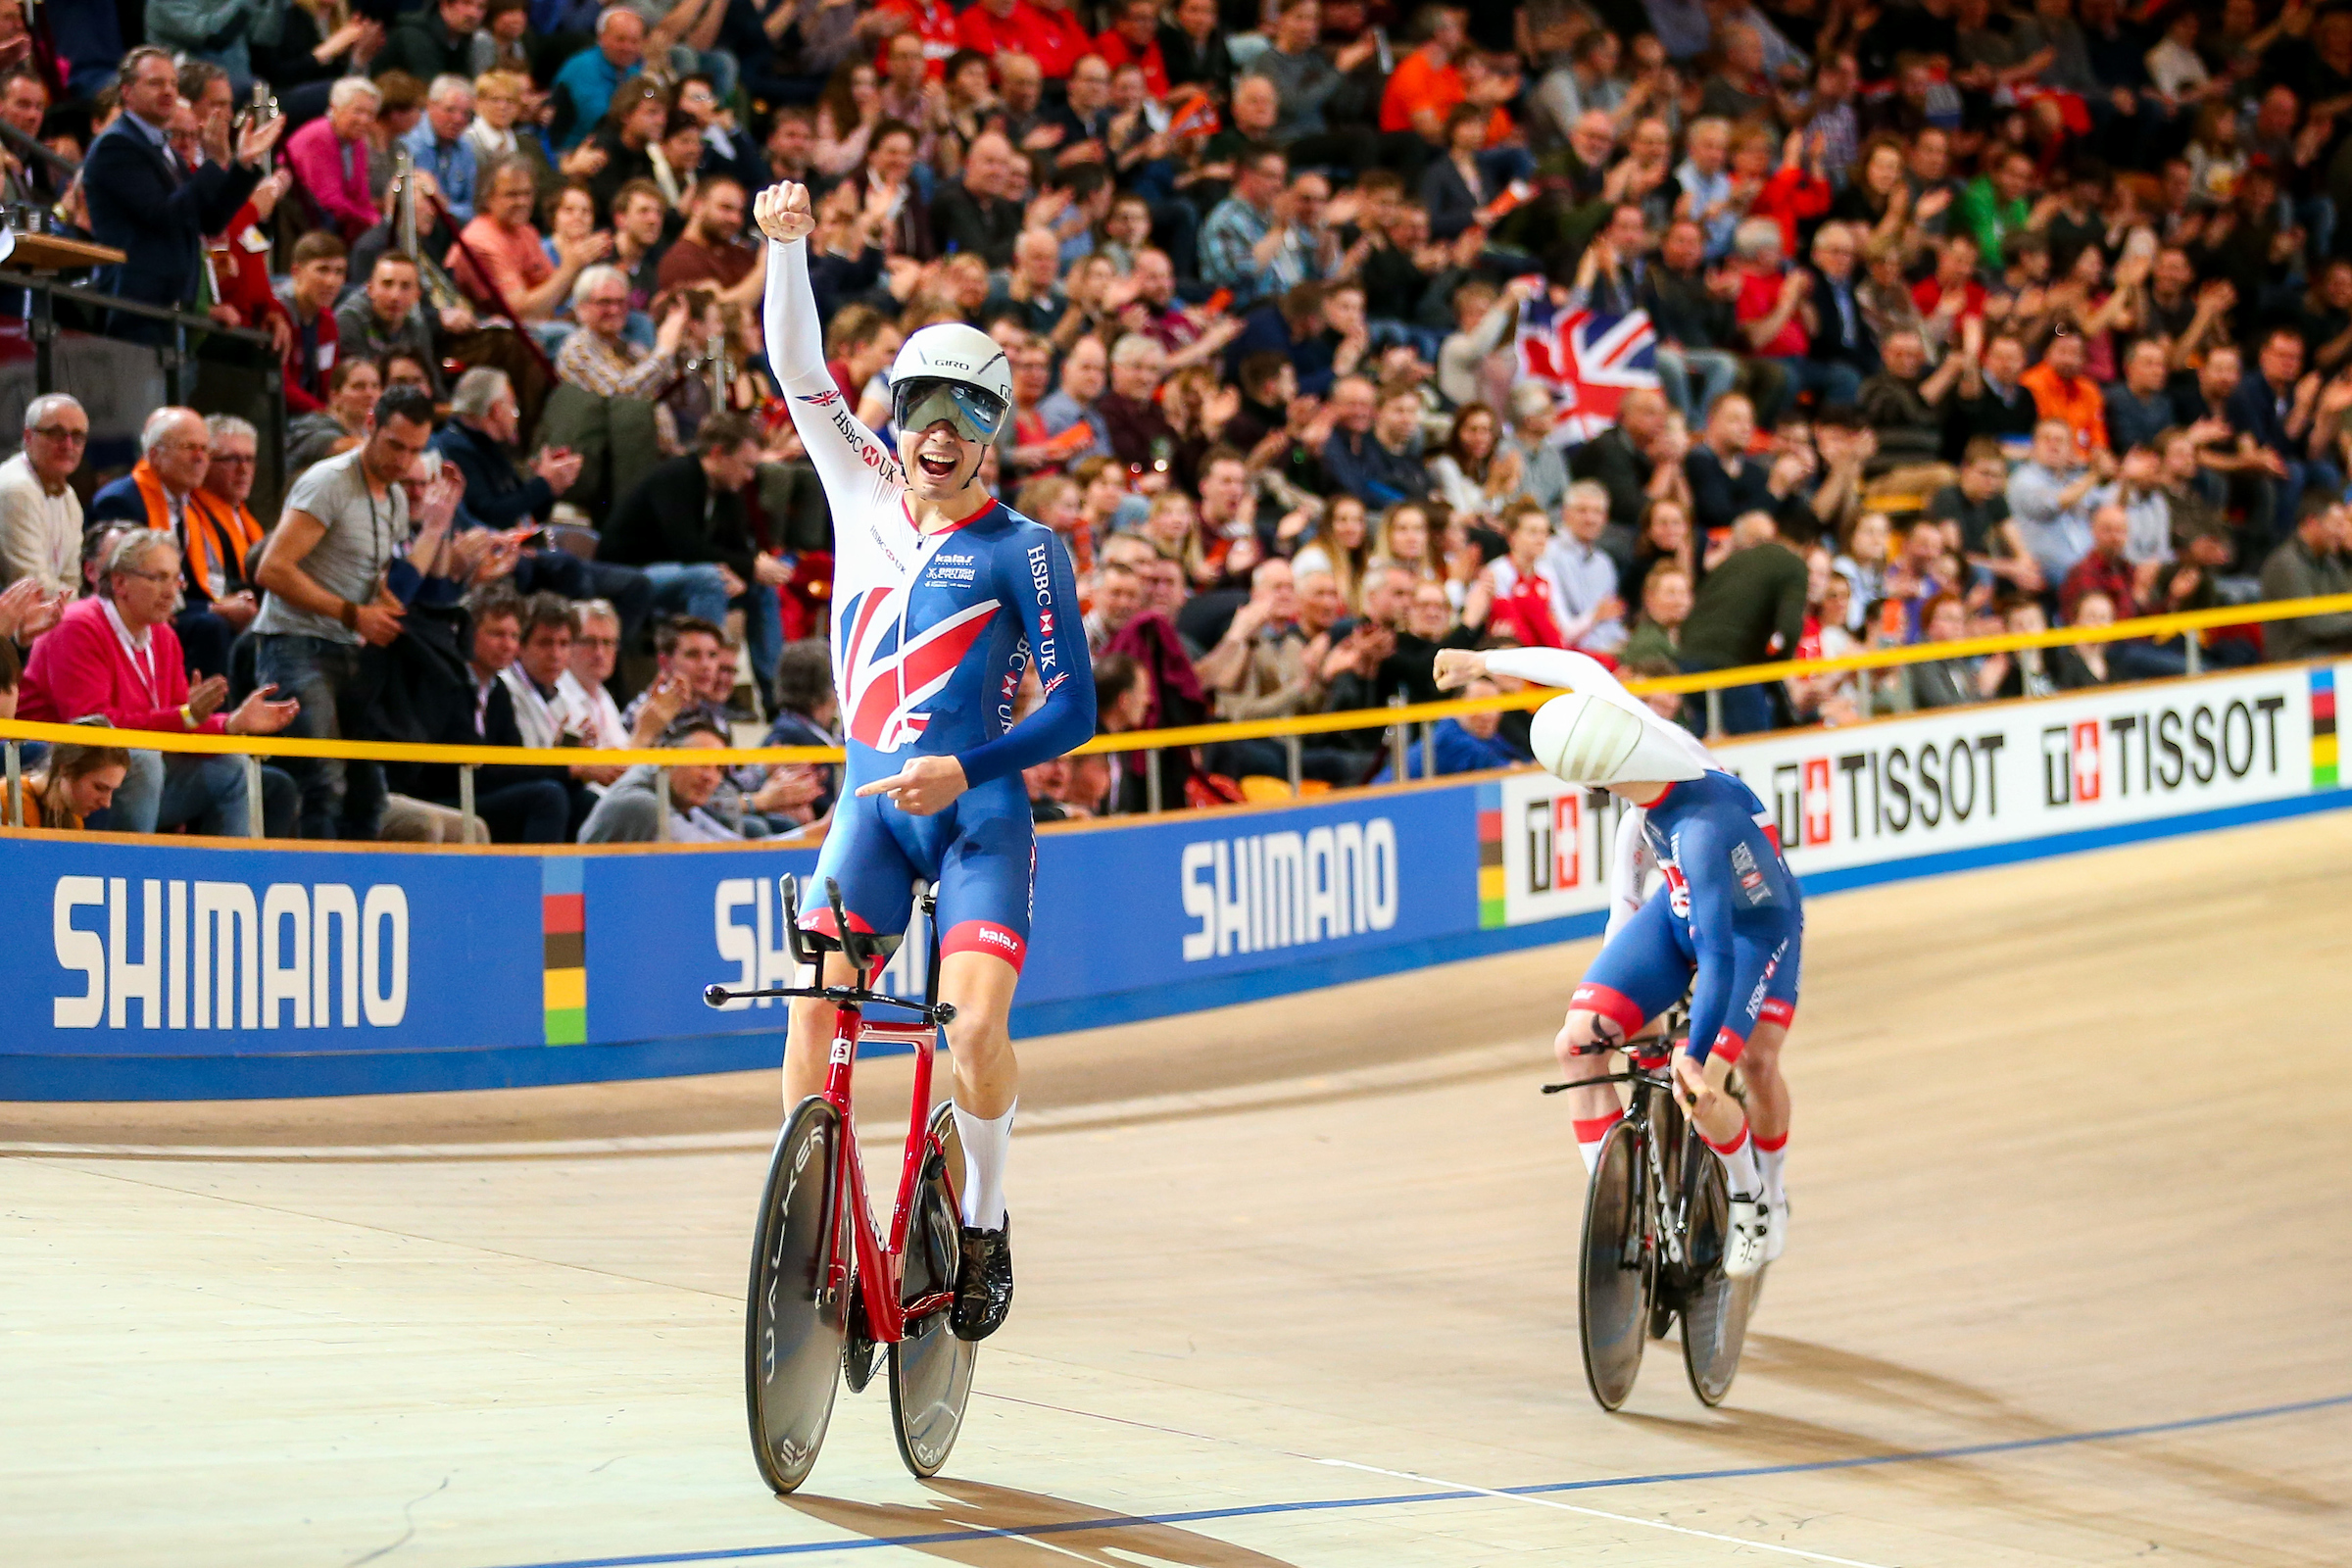 Charlie Tanfield at the 2018 UCI Track Cycling World Championships. Picture: SWpix.com